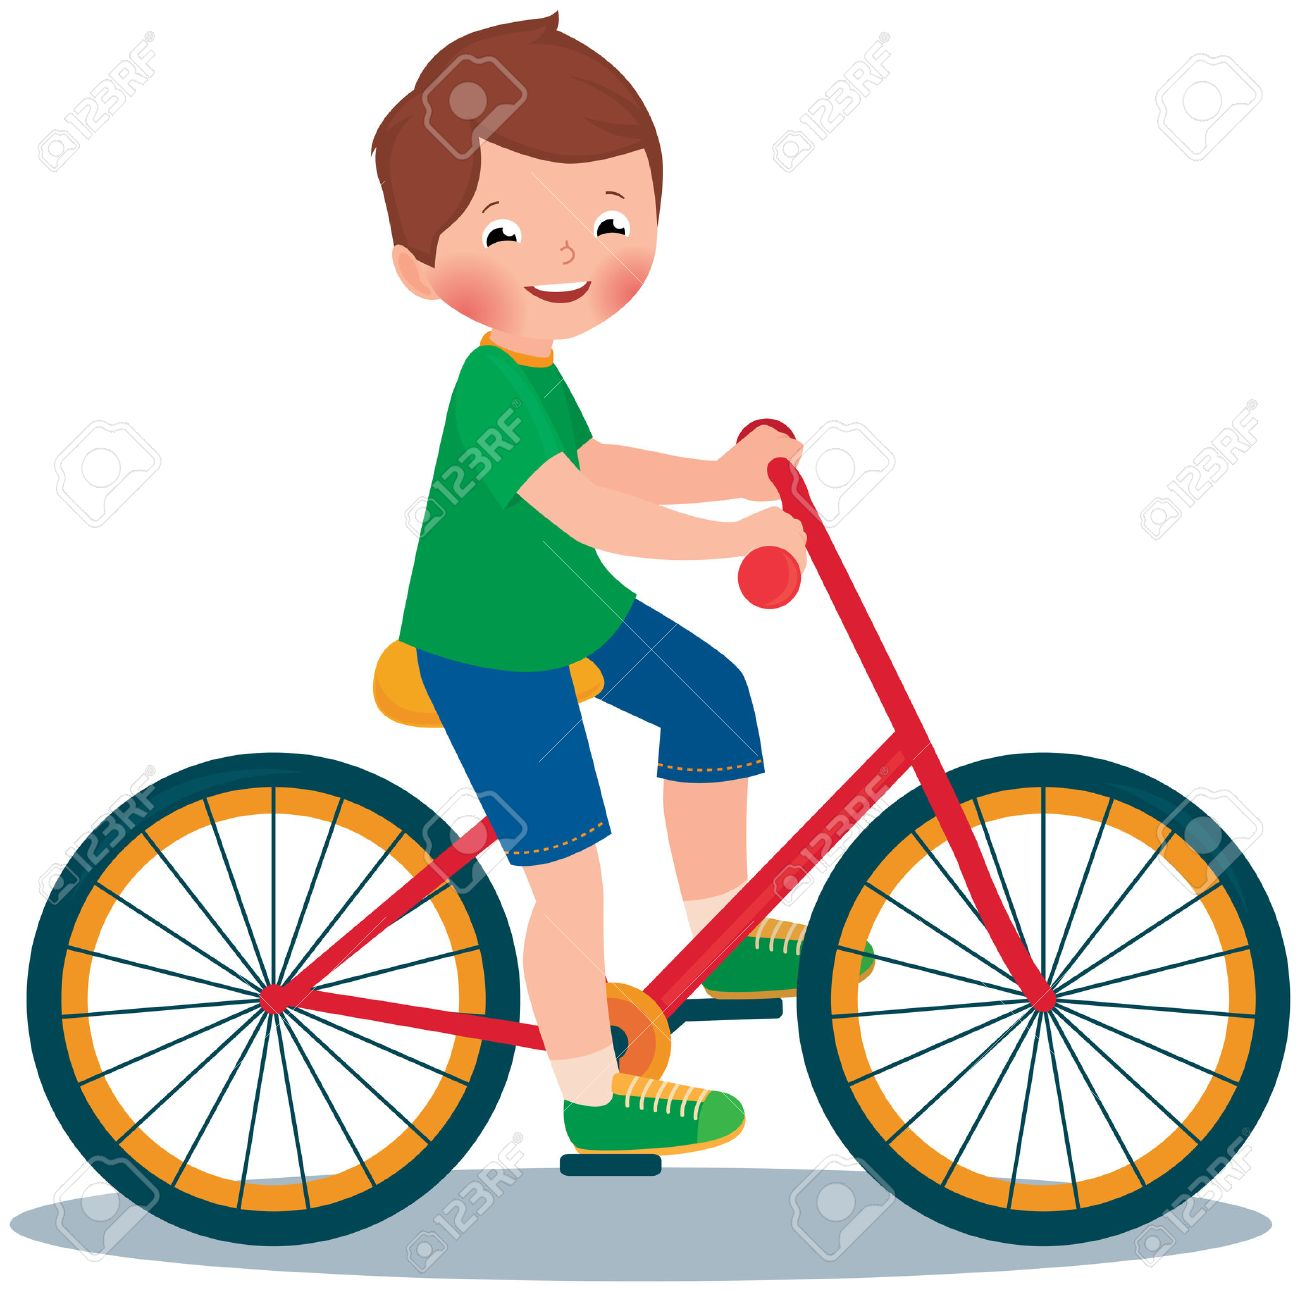 1300x1291 Stock Vector Cartoon Illustration Of A Boy Child Rides A Bike